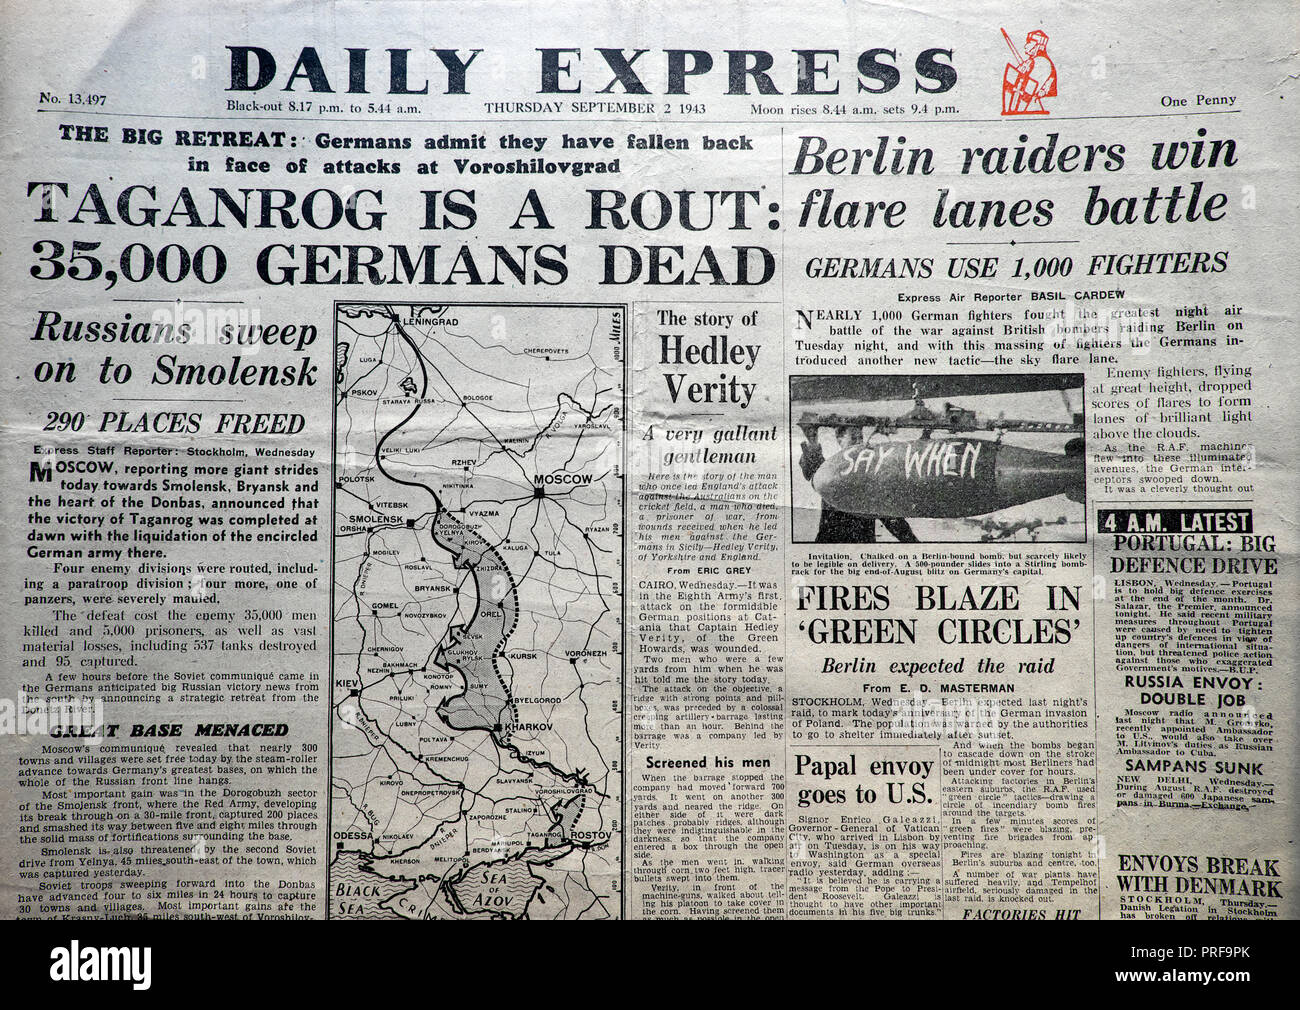 'Taganrog is a Rout: 35,000 Germans Dead' front page headline of the Daily Express newspaper 2 September 1943  London UK  historical archive - Stock Image